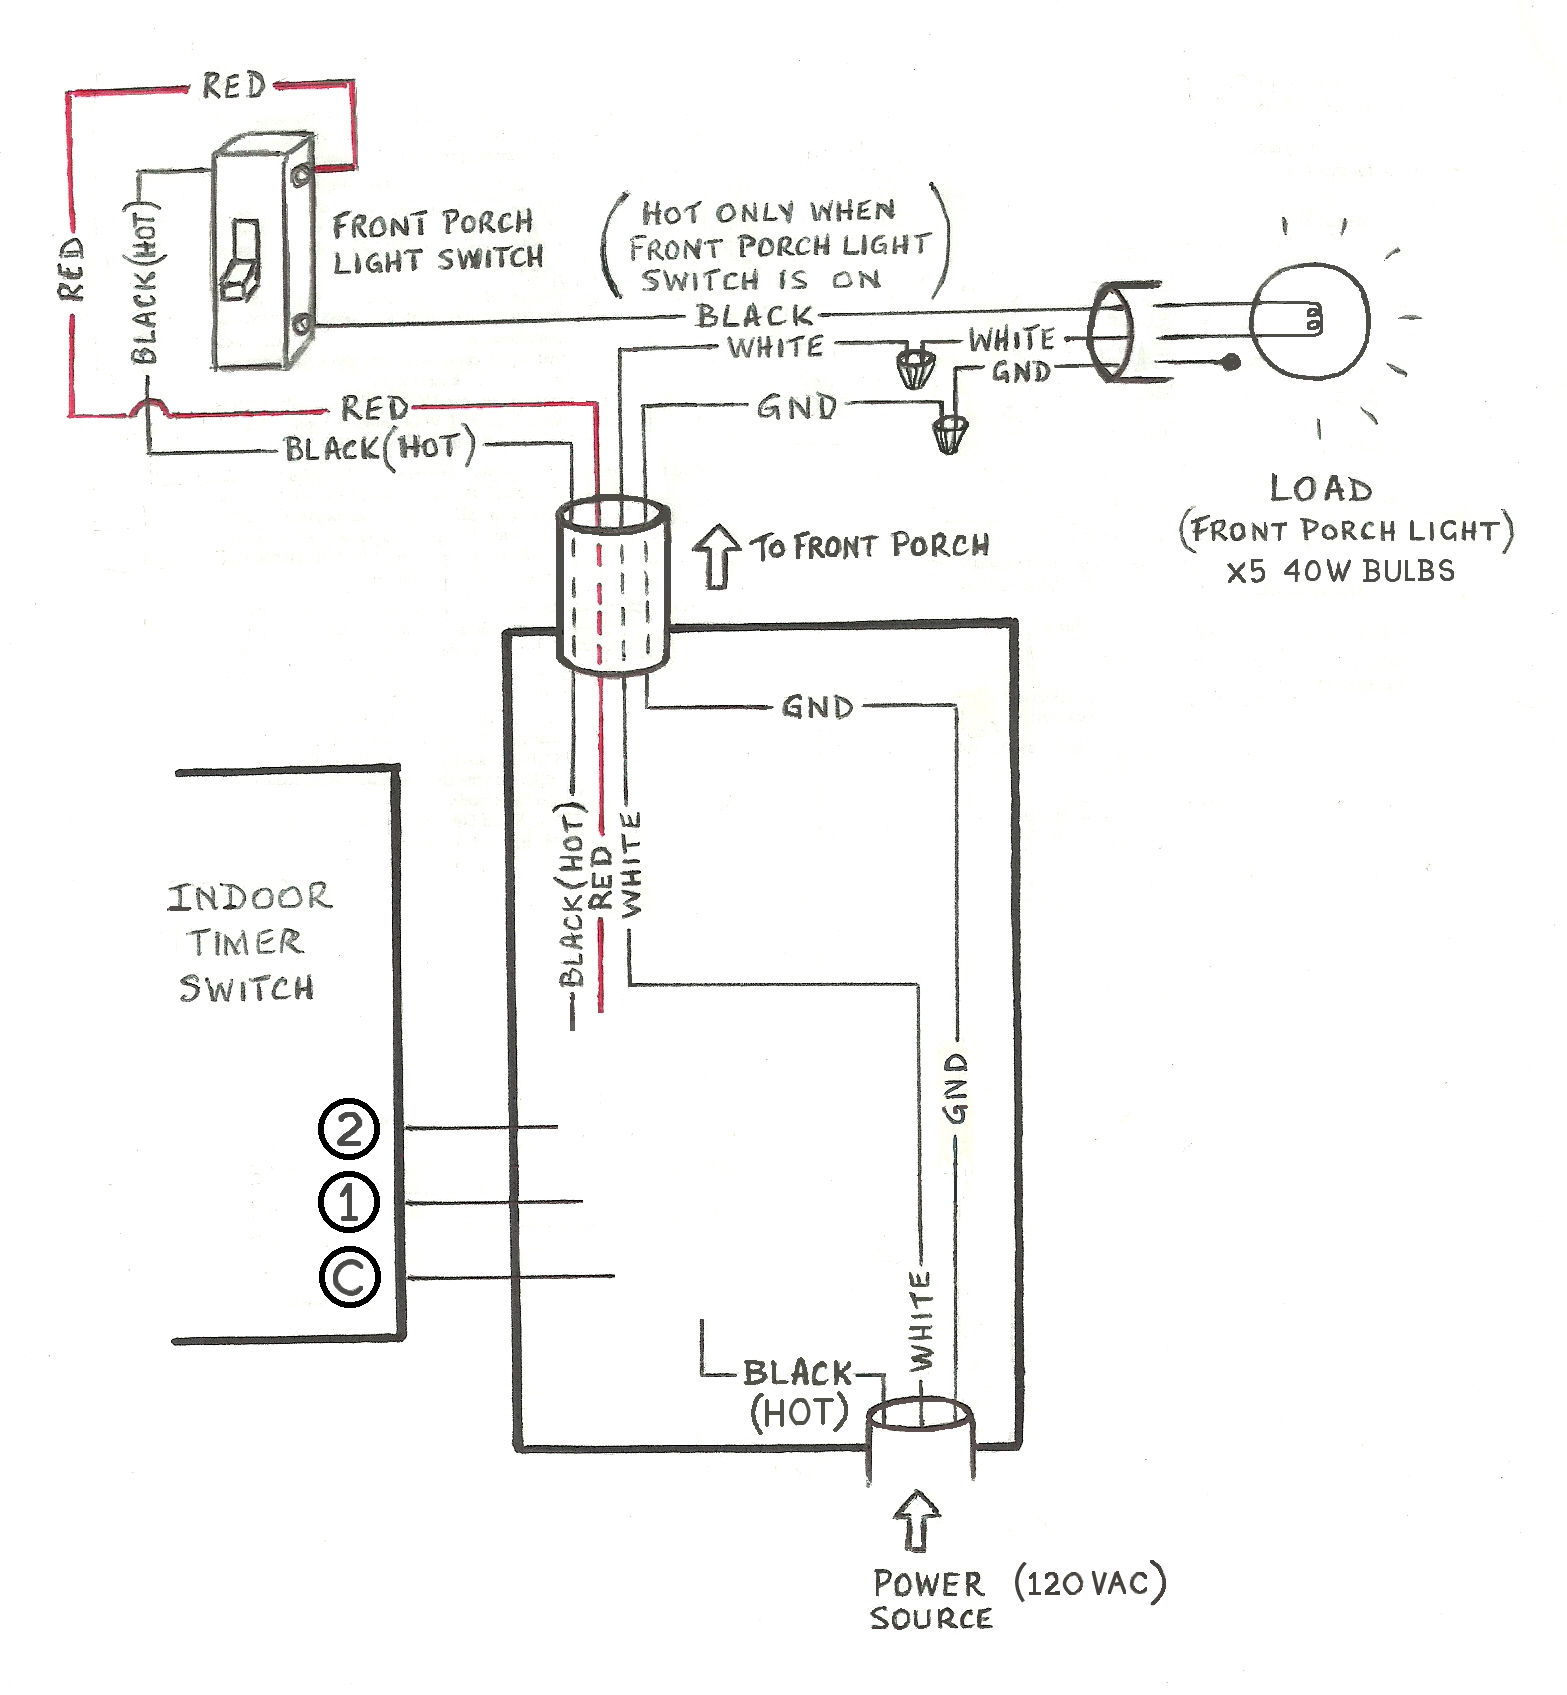 Need Help Wiring A 3-Way Honeywell Digital Timer Switch - Home - 3 Way Wiring Diagram